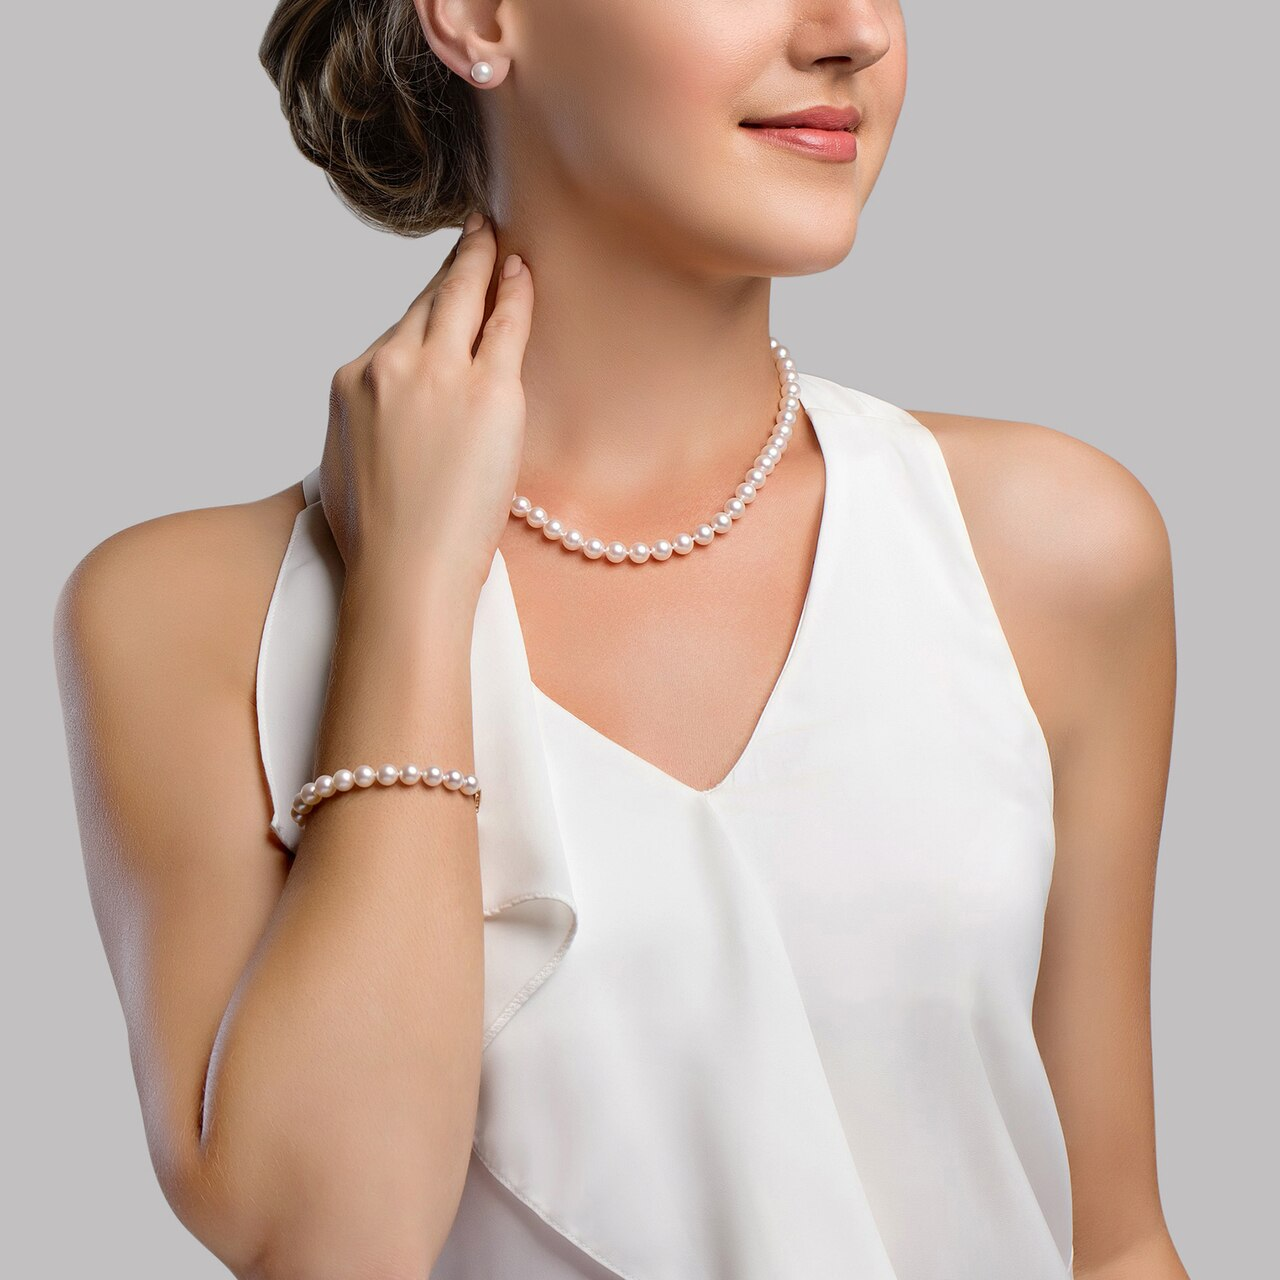 This elegant necklace, bracelet and earring set features 7.0-7.5mm Hanadama Akoya pearls